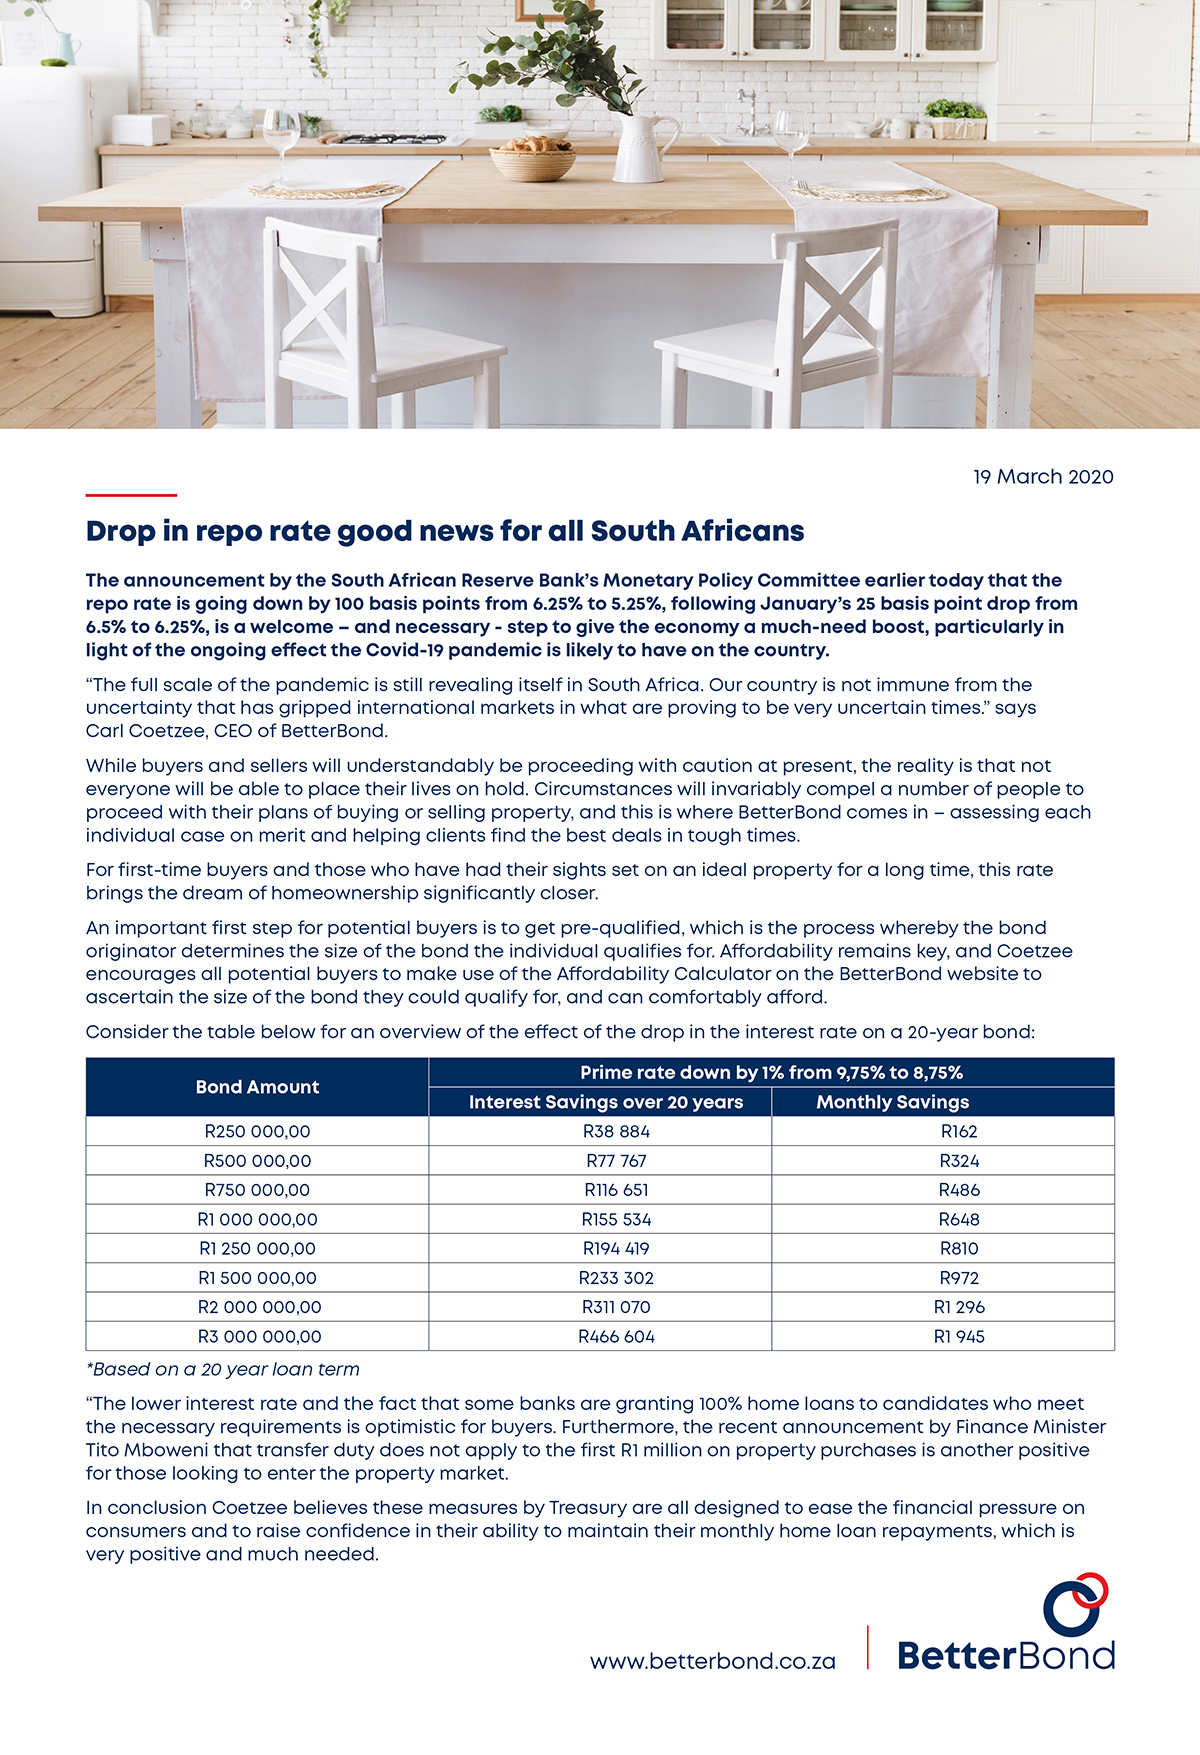 The announcement by the South African Reserve Bank's Monetary Policy Committee earlier today that the repo rate is going down by 100 basis points from 6.25% to 5.25%, following January's 25 basis point drop from 6.5% to 6.25%, is a welcome – and necessary - step to give the economy a much-need boost, particularly in light of the ongoing effect the Covid-19 pandemic is likely to have on the country.